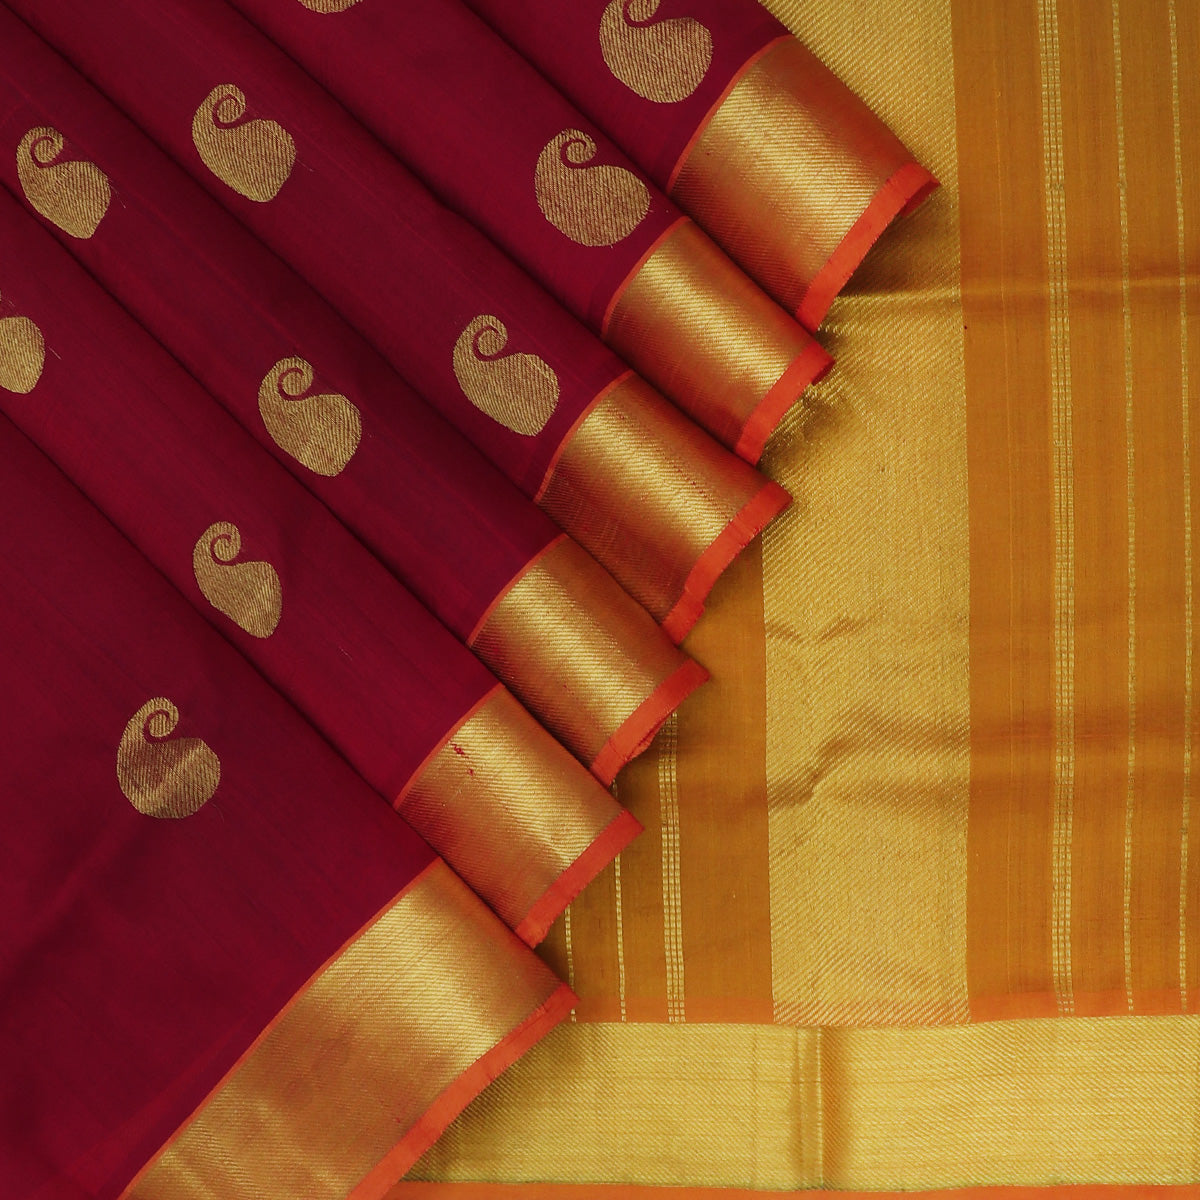 Silk Cotton Saree-Maroon with Mango Buttas and Mustard with Simple Zari border